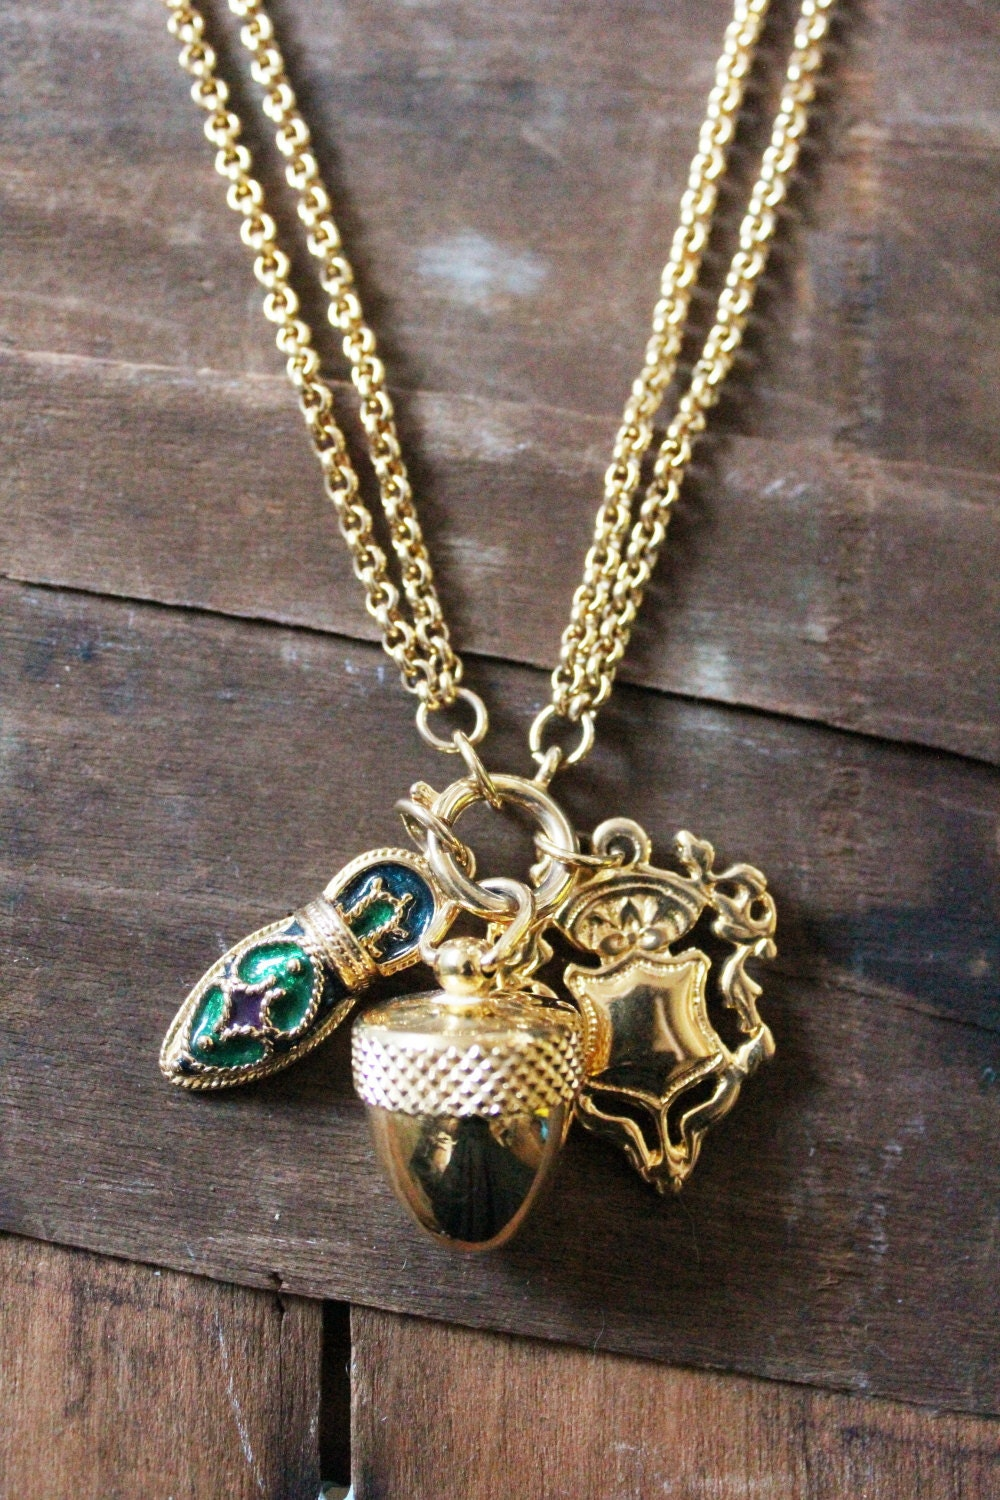 Vintage 80 39 s gold charm necklace by joan rivers for Joan rivers jewelry necklaces